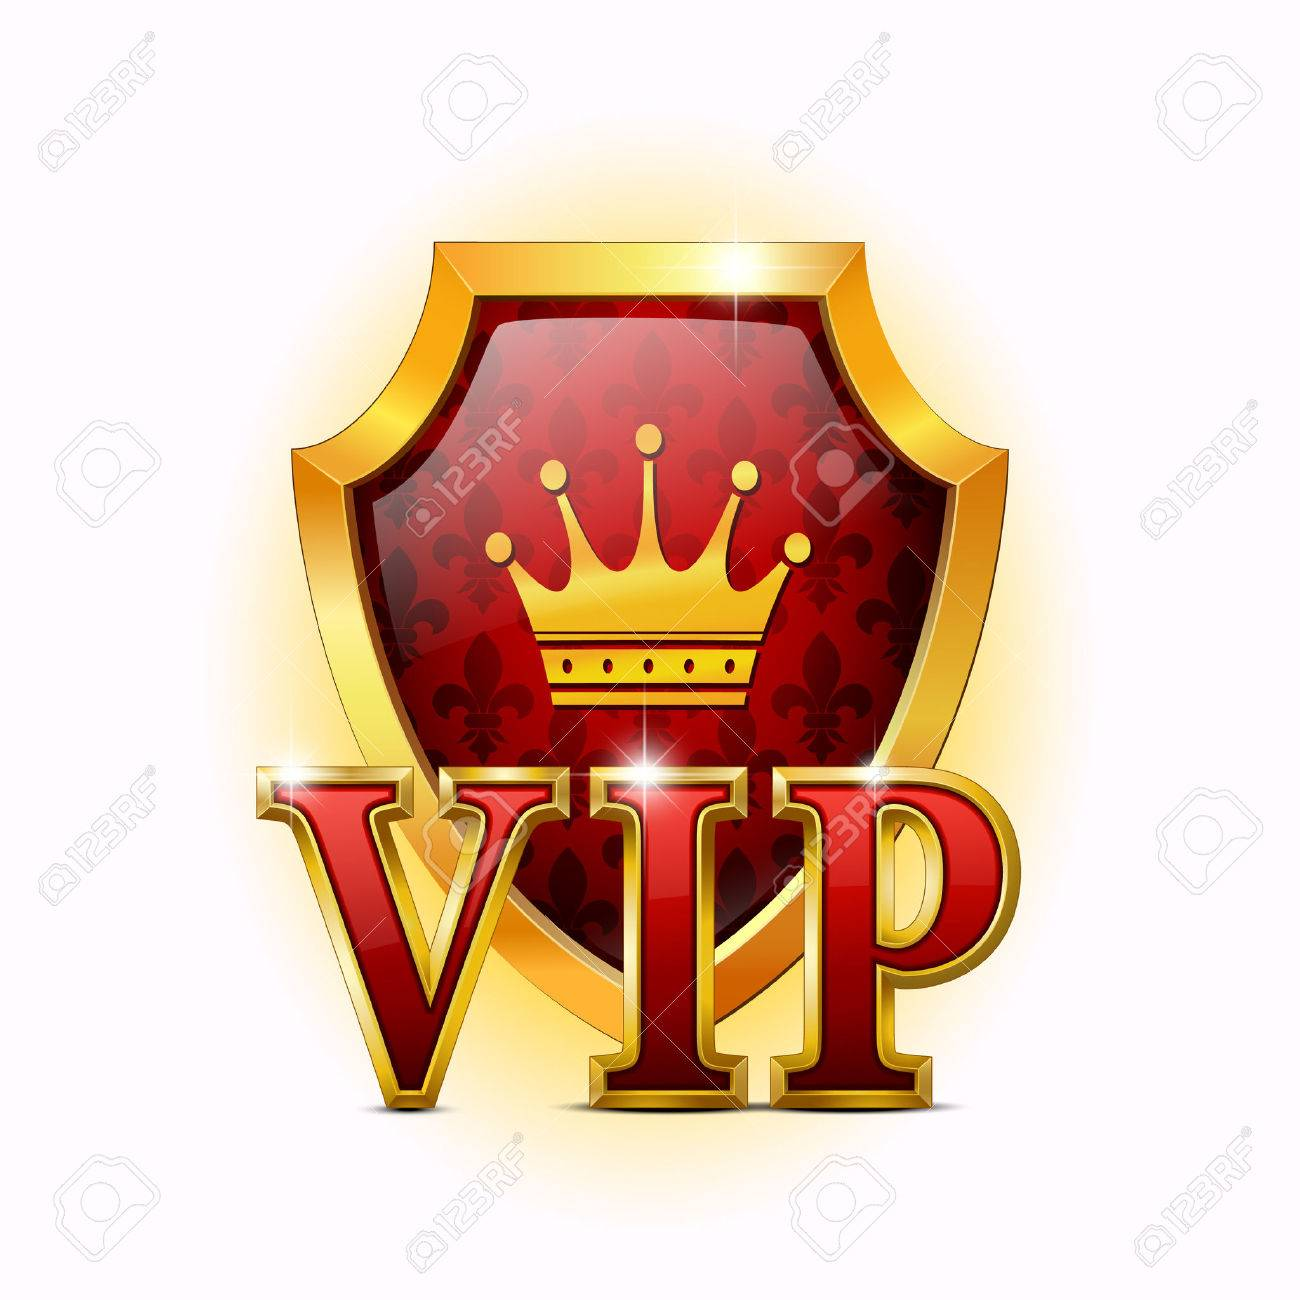 Shield on a white background. VIP Stock Vector - 8569851